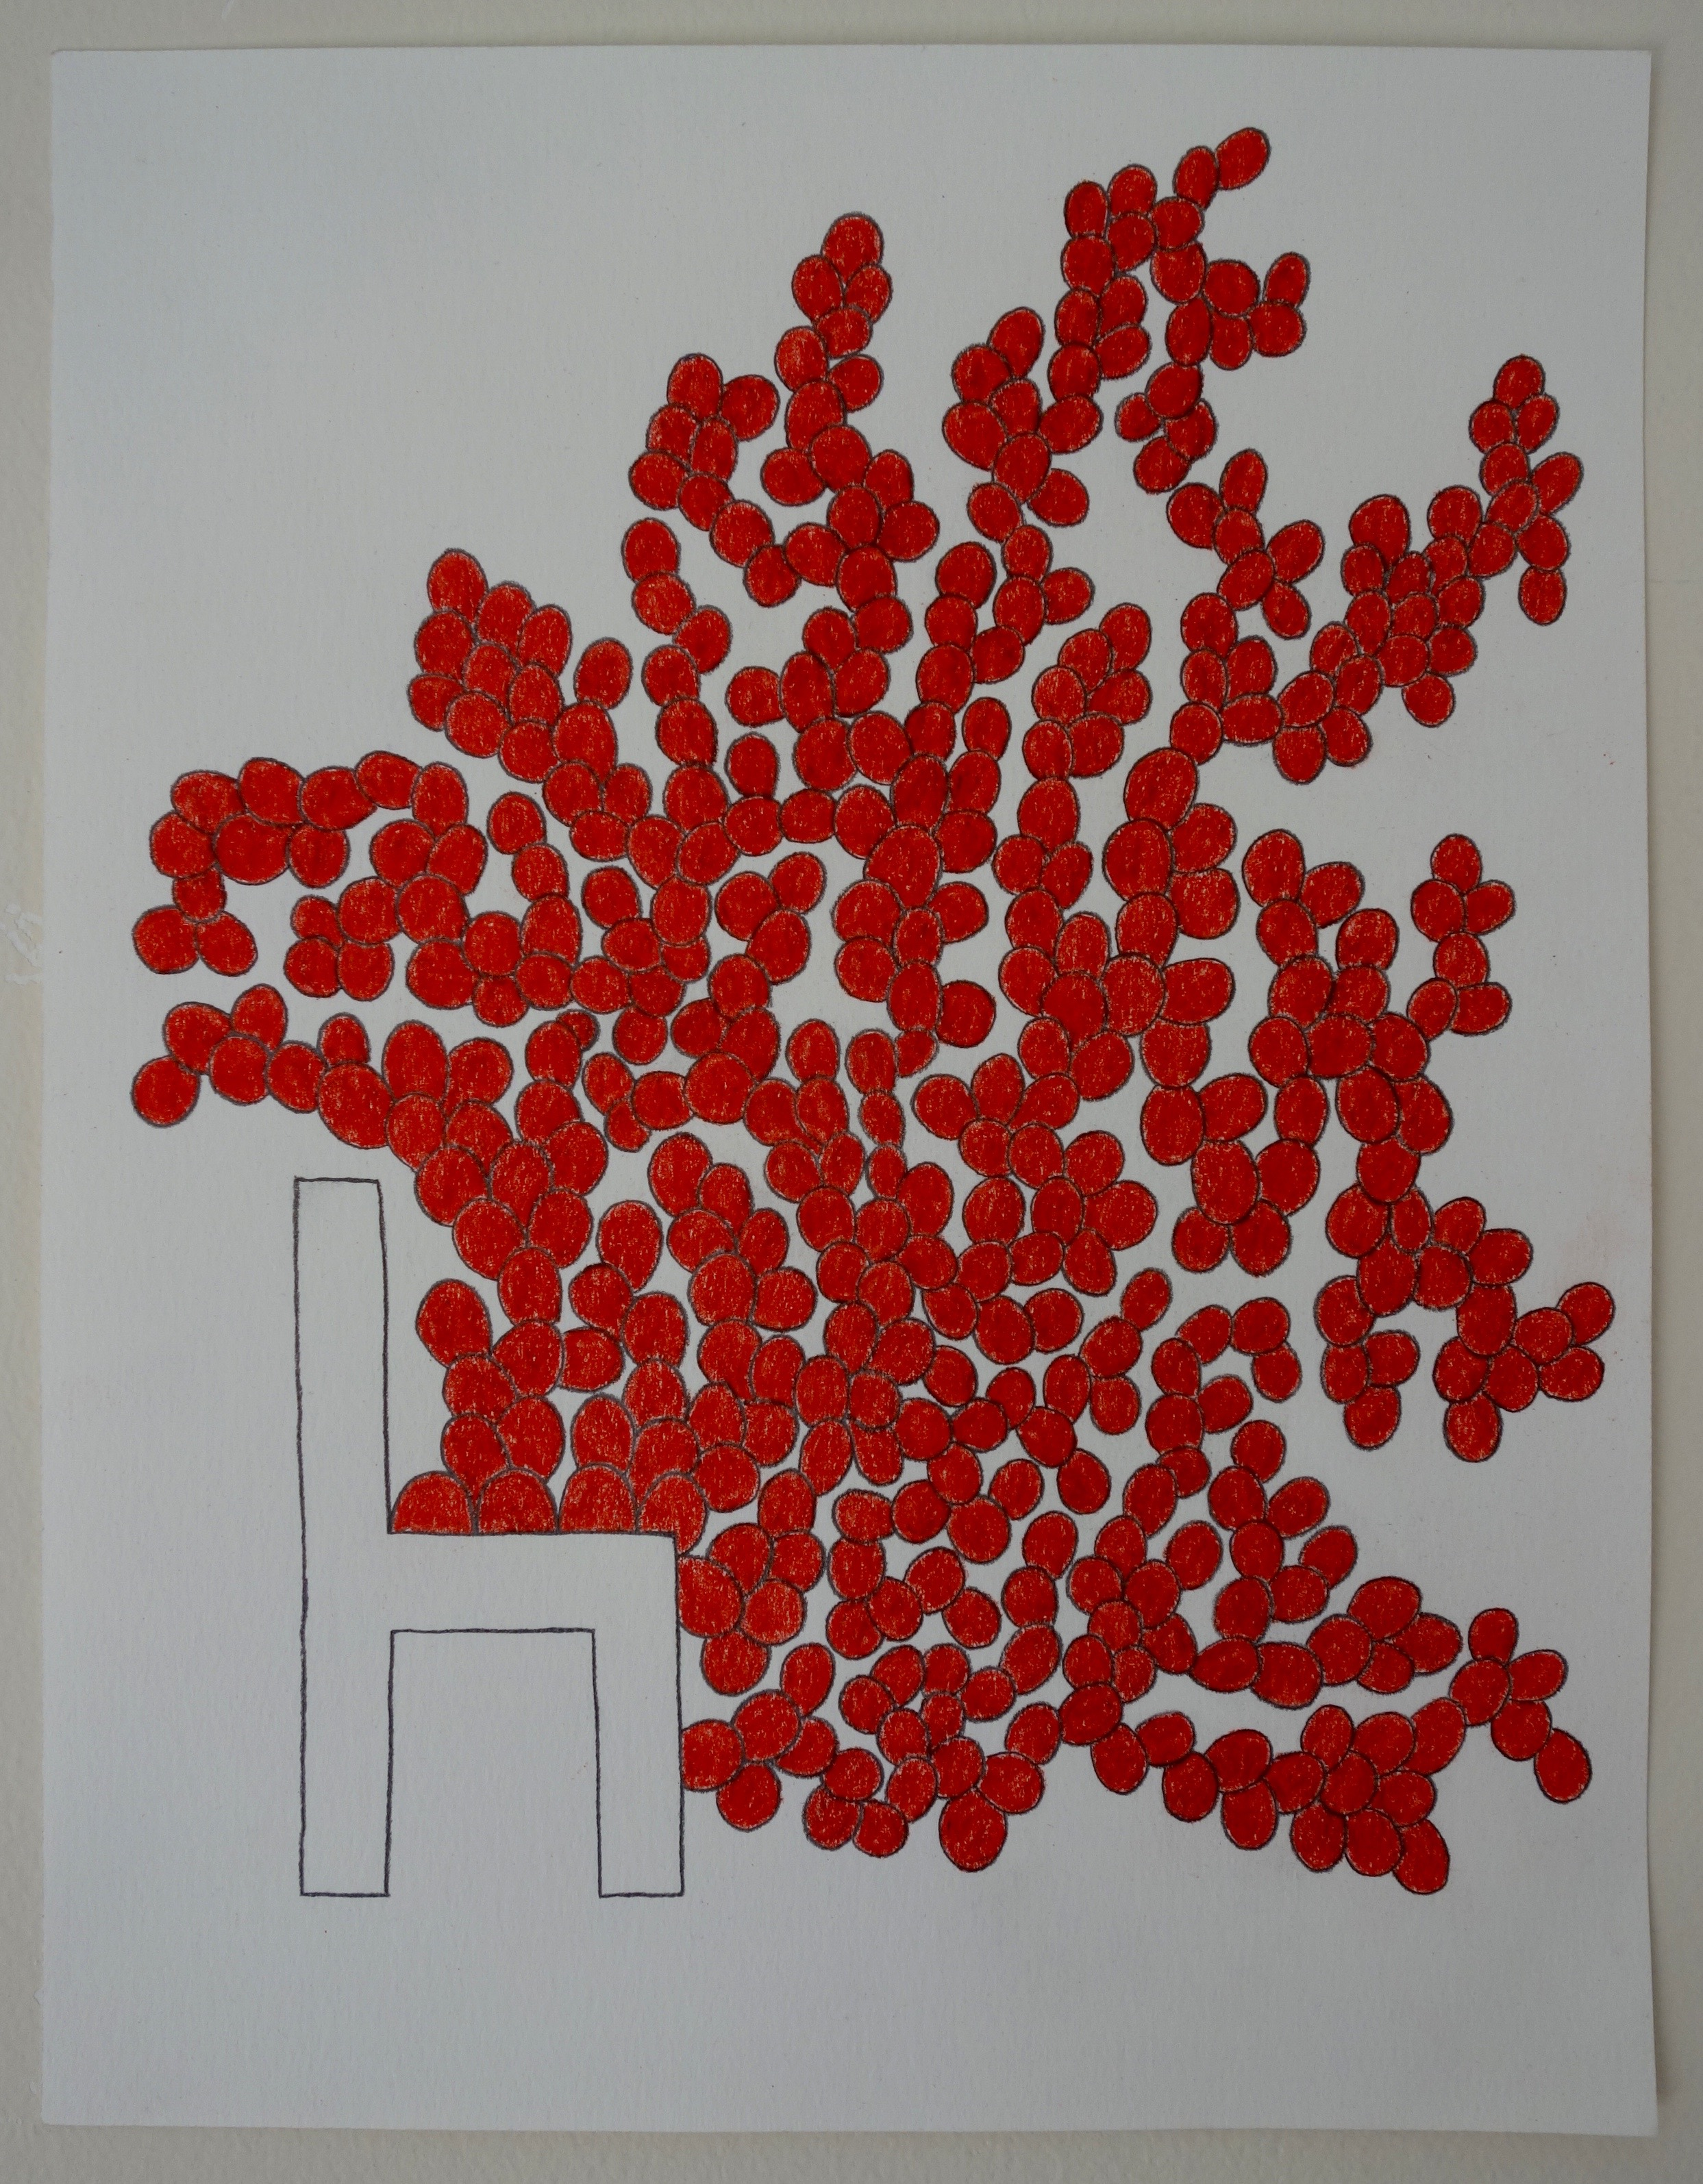 CHAIR/RED SPROUTING